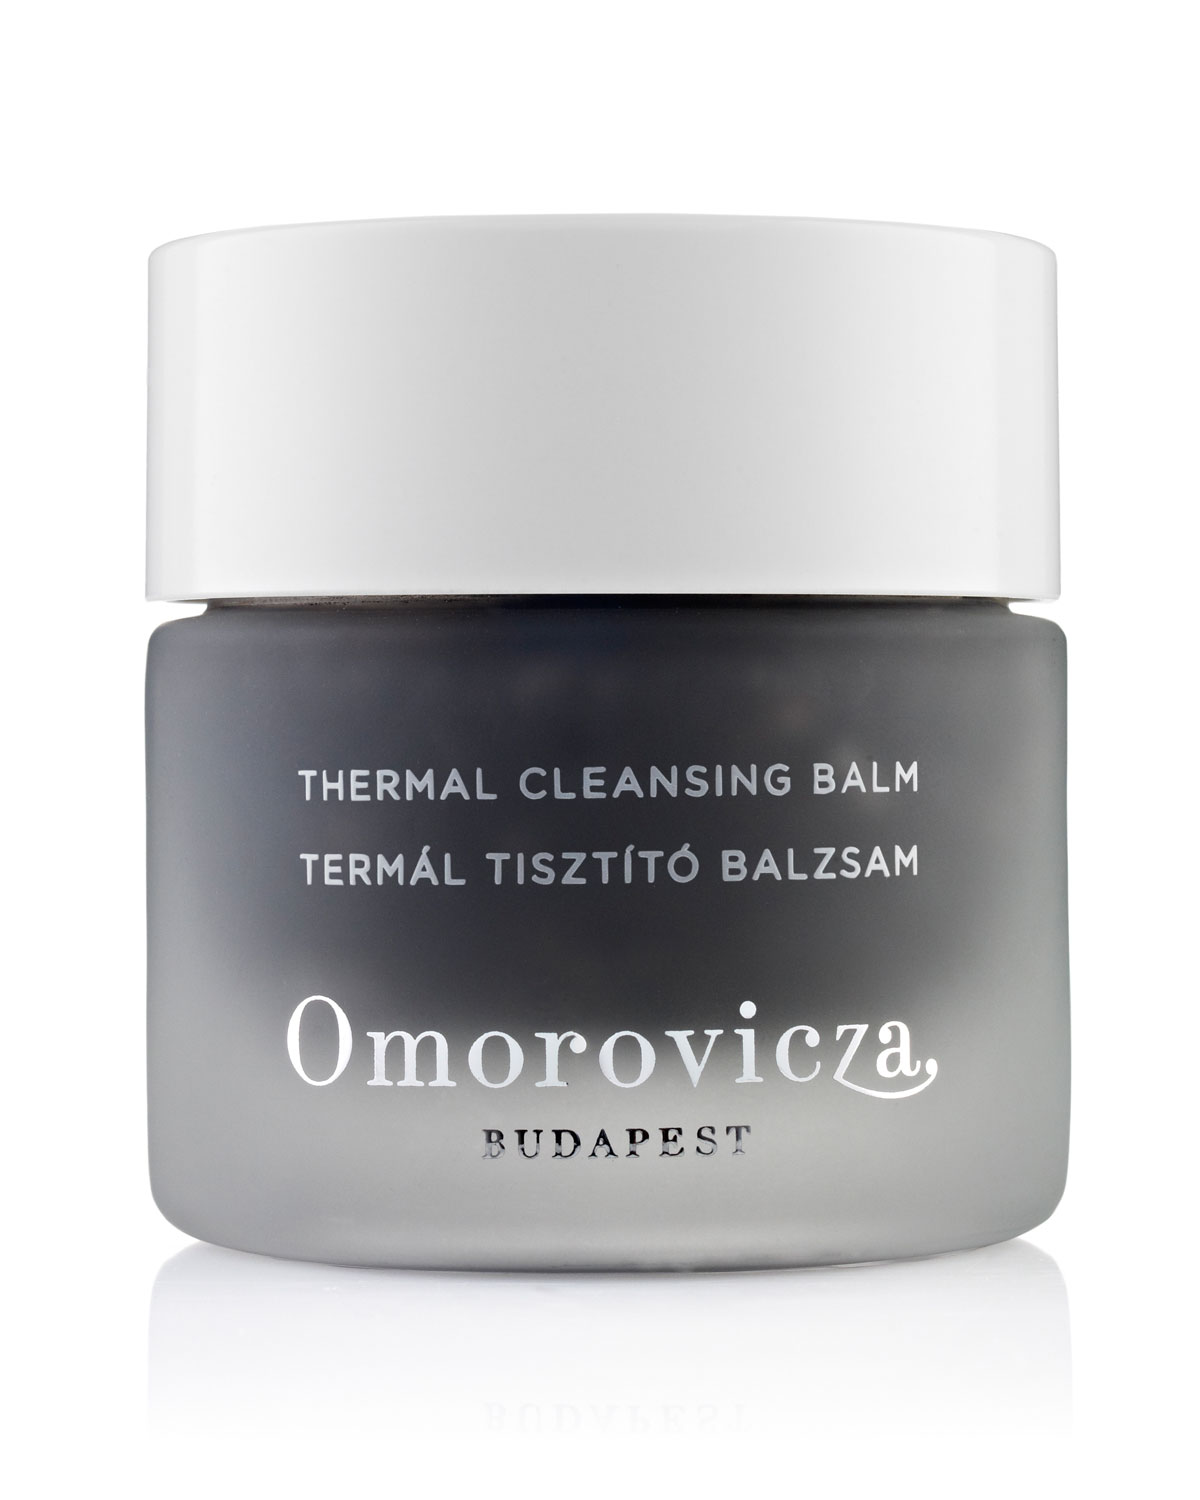 OMOROVICZA Thermal Cleansing Balm, 1.7 Oz.